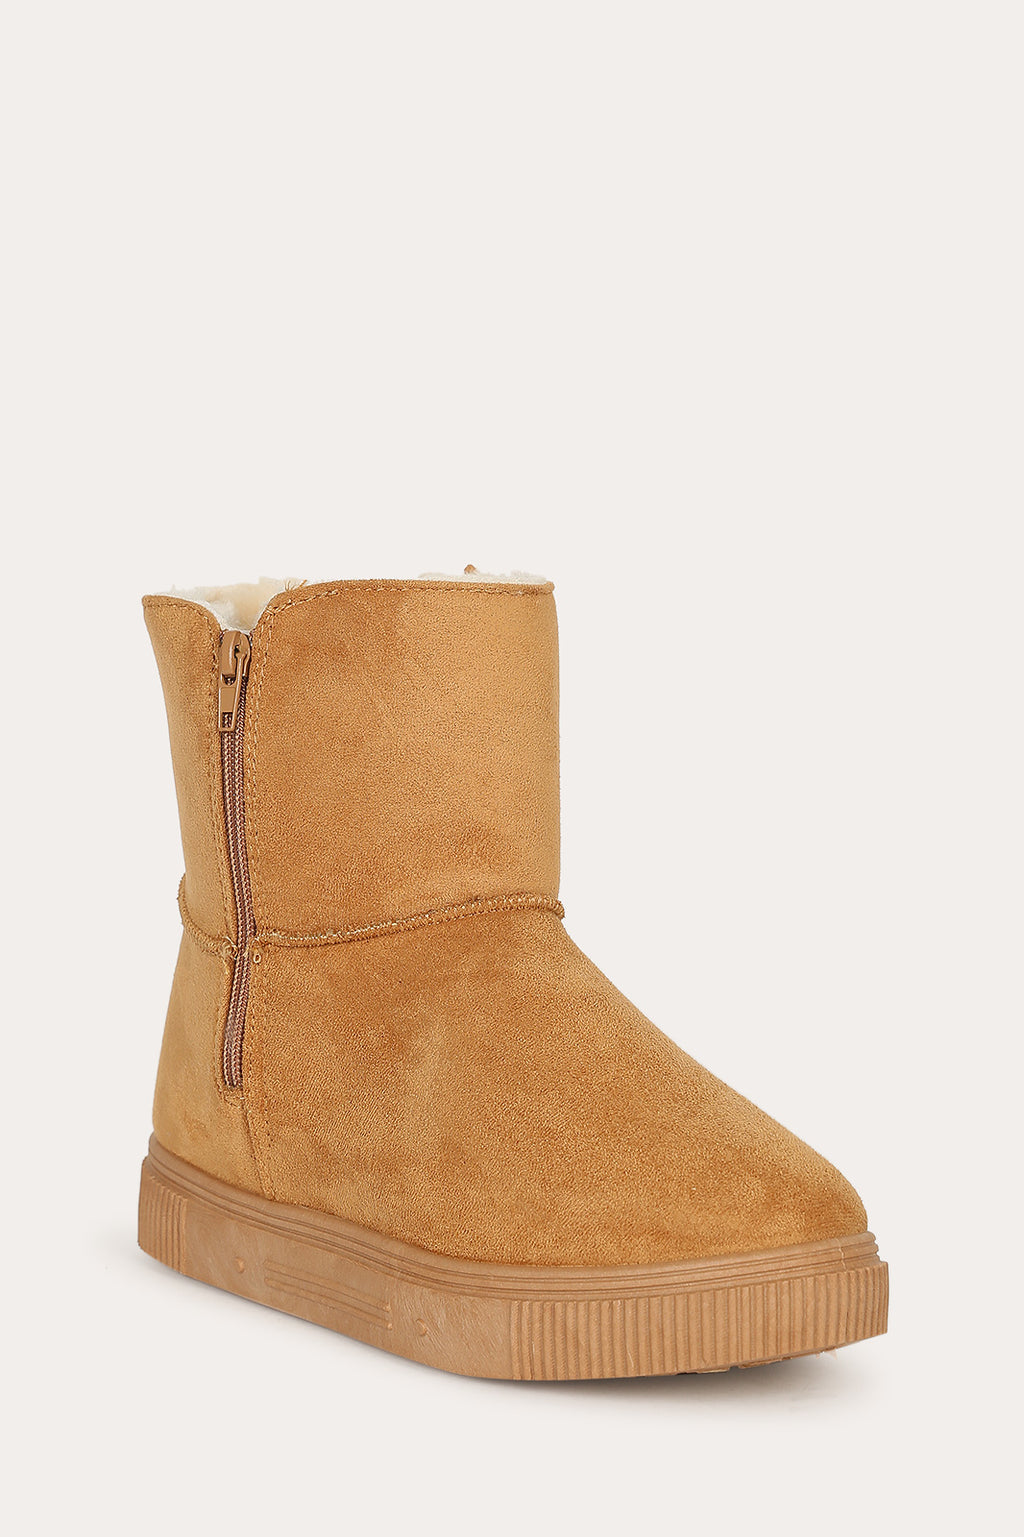 Bamboo Cozette-04 Tan Short Boot with Fur Inside